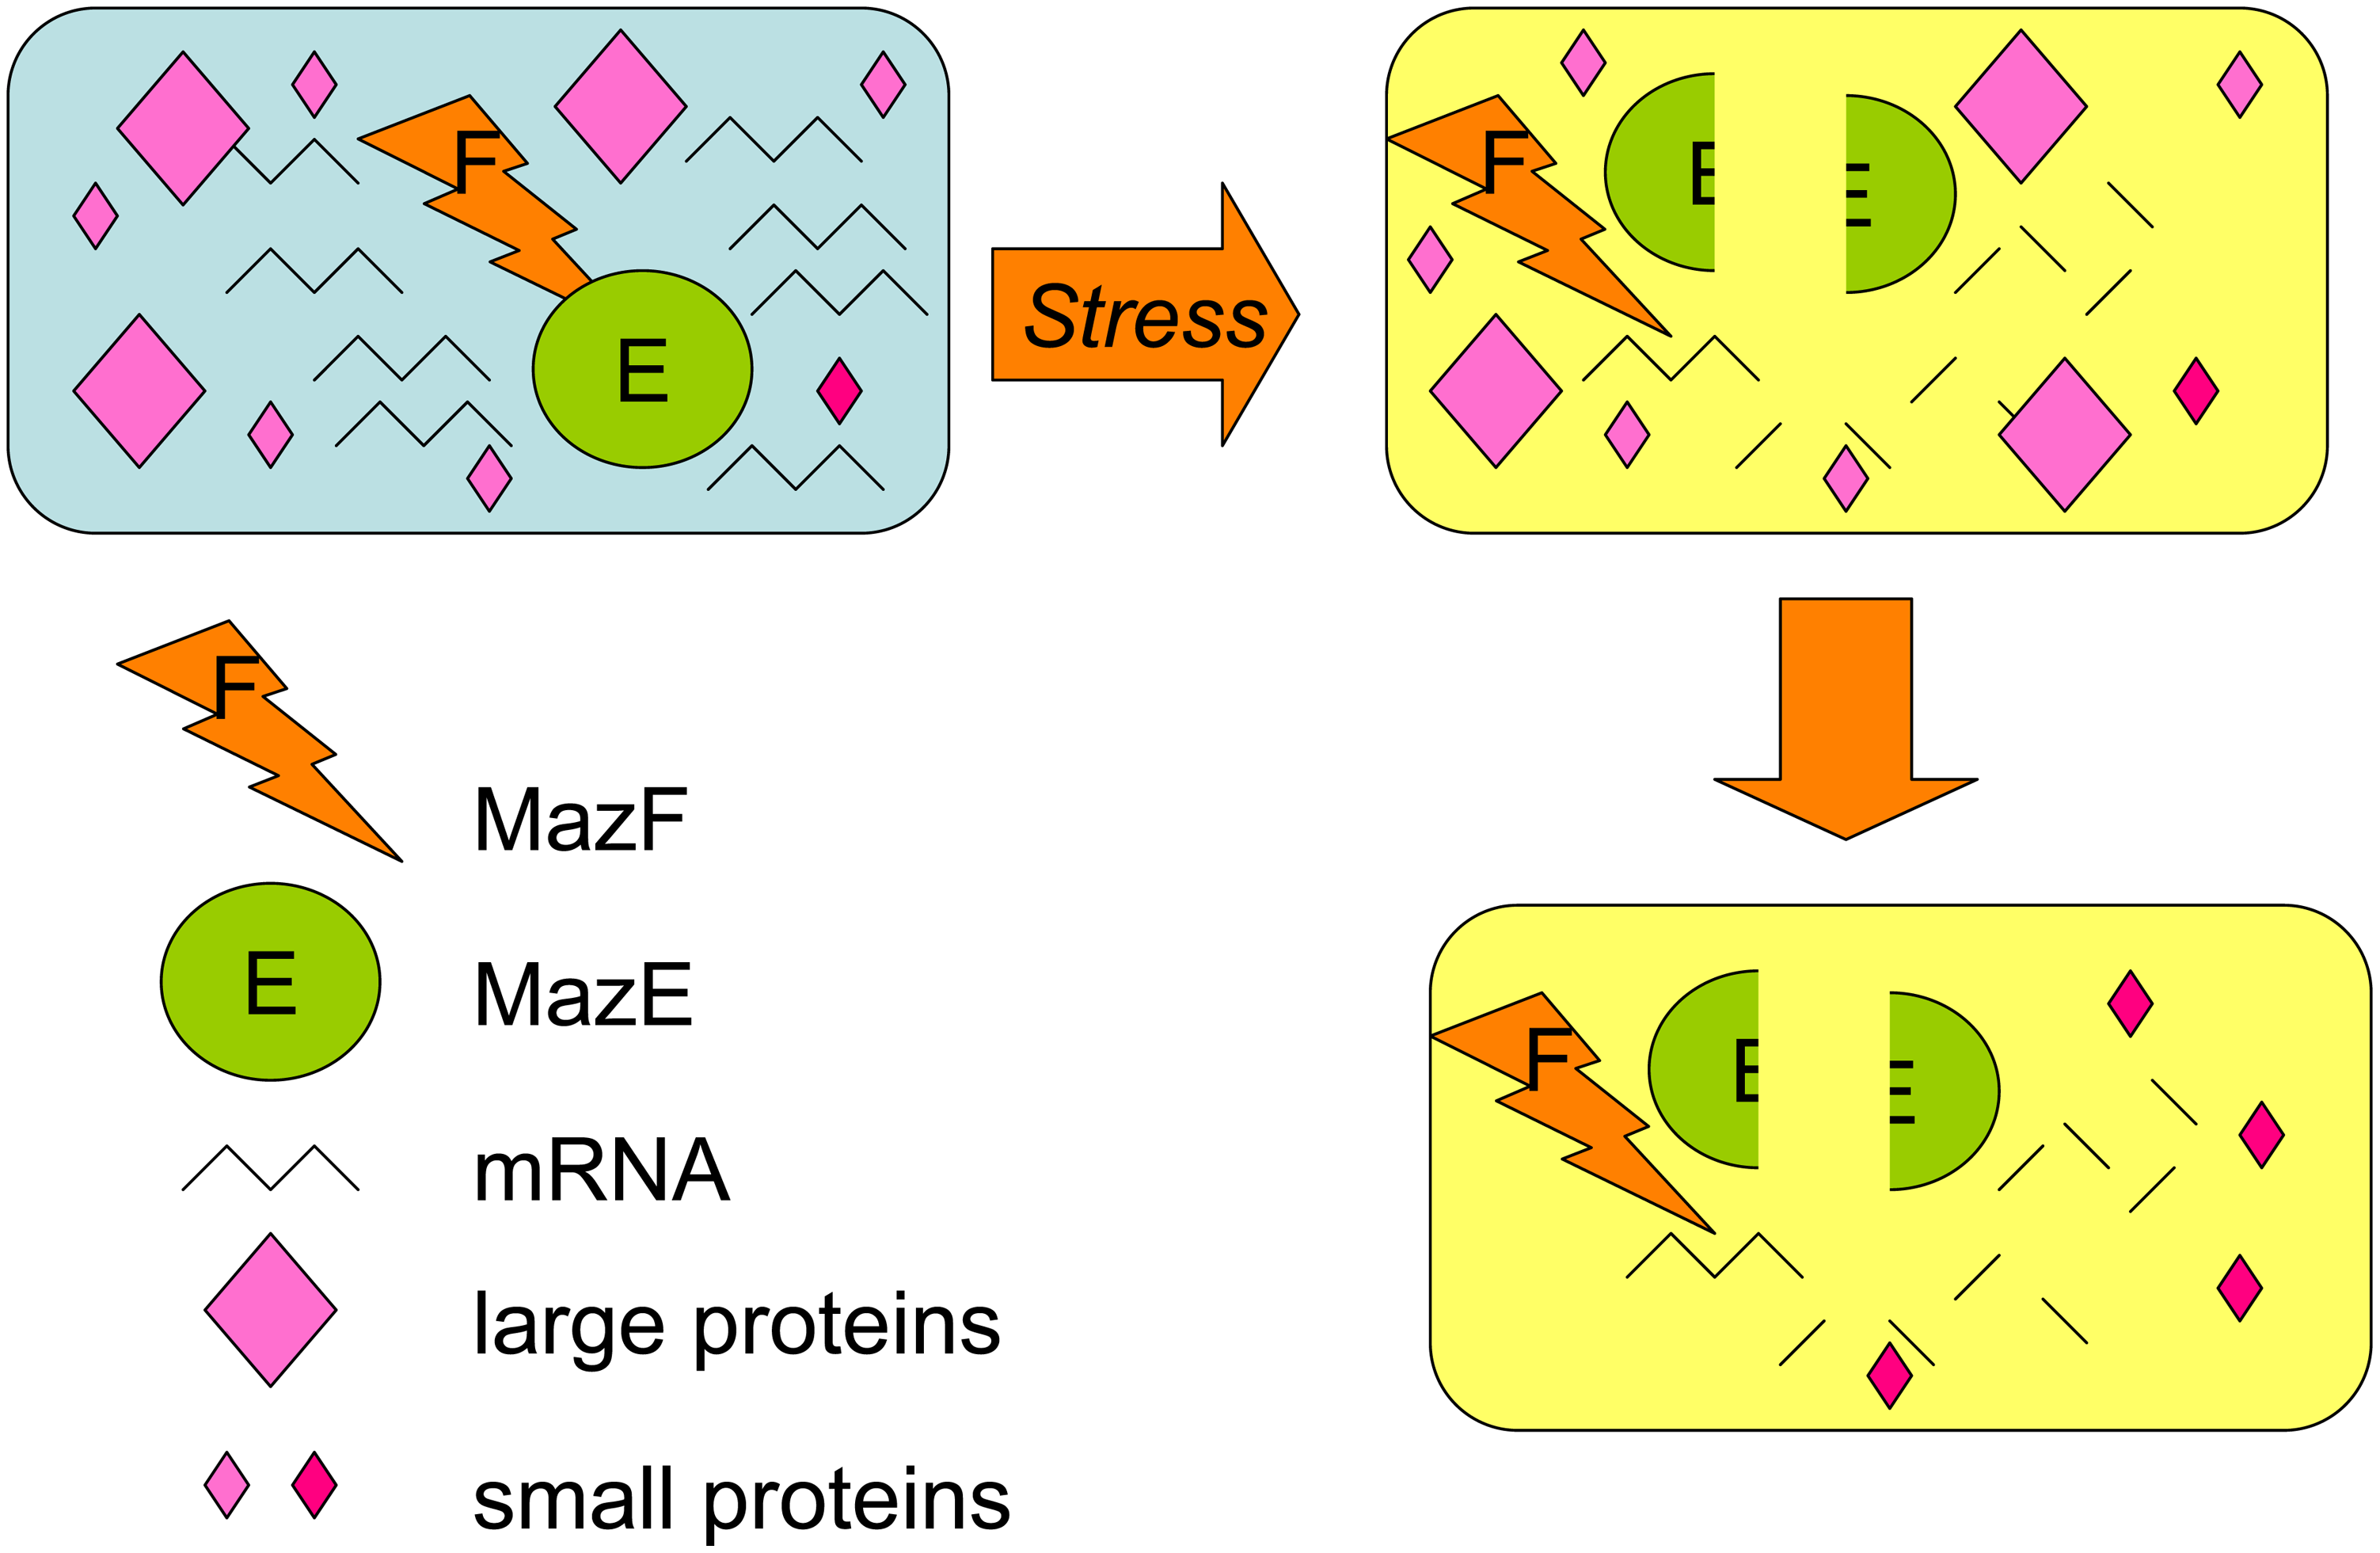 MazF RNase toxin promotes loss of most proteins but selective increase of some small proteins with functions in the MazEF death-and-survival program.